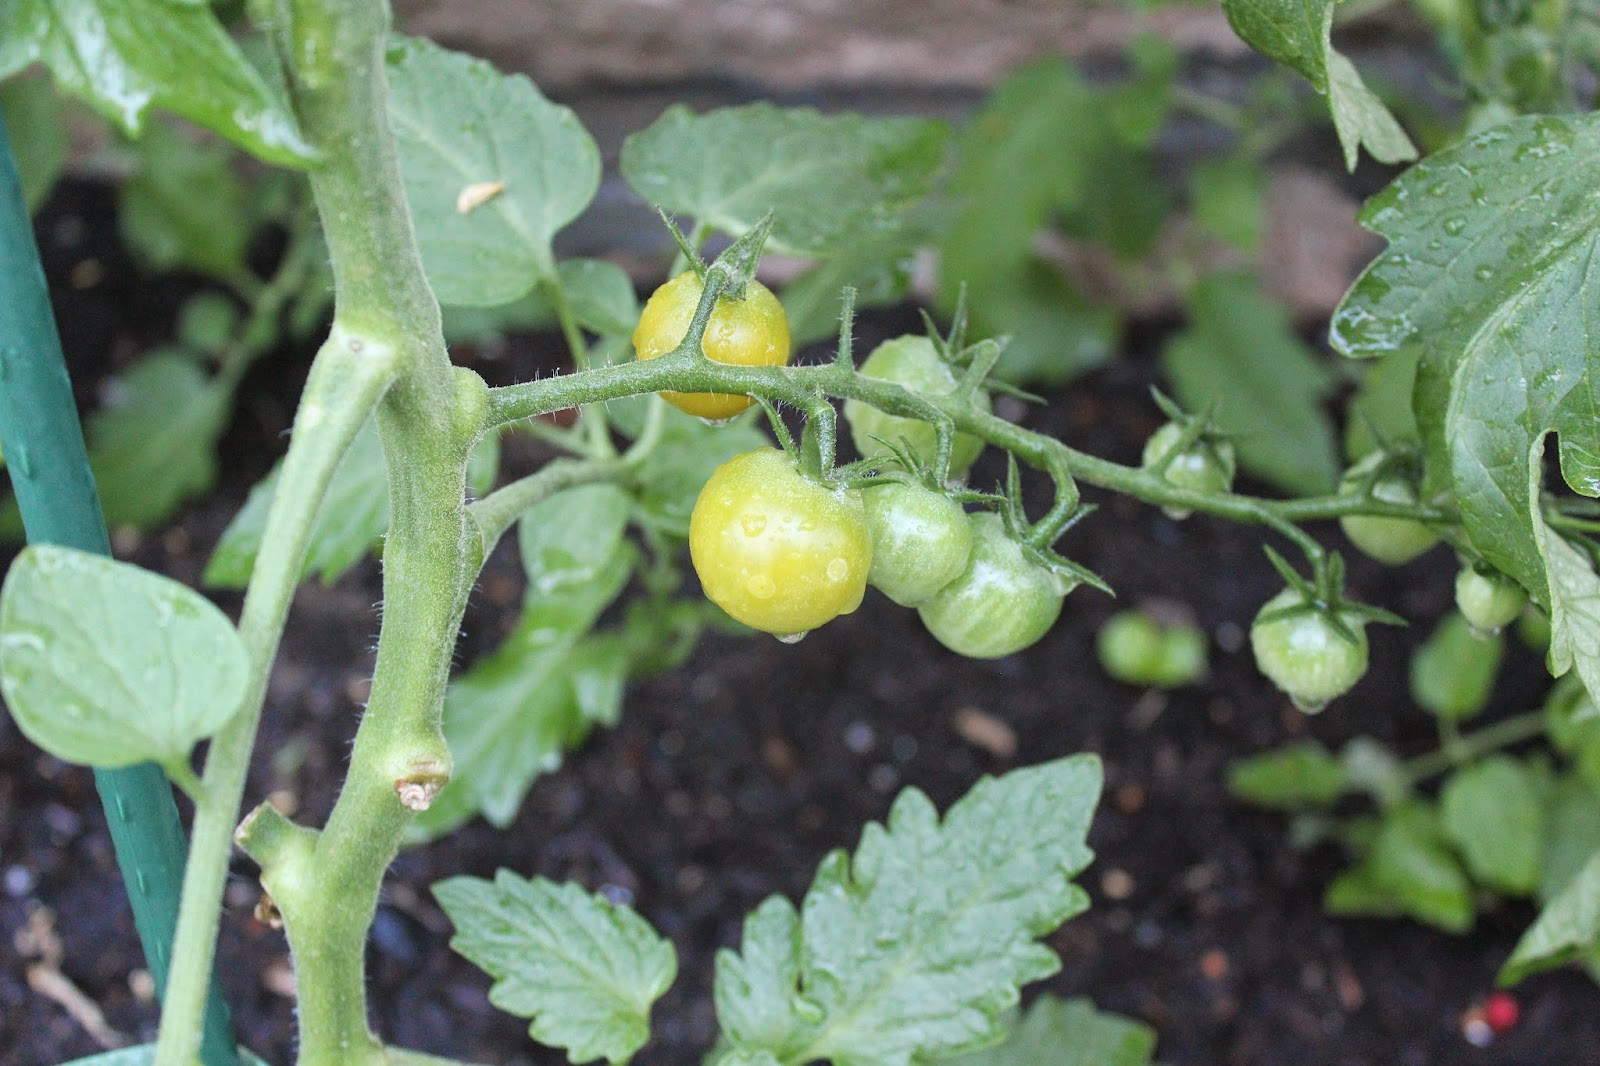 Megan from Delicious Dishings' Sun Gold tomatoes, starting to ripen